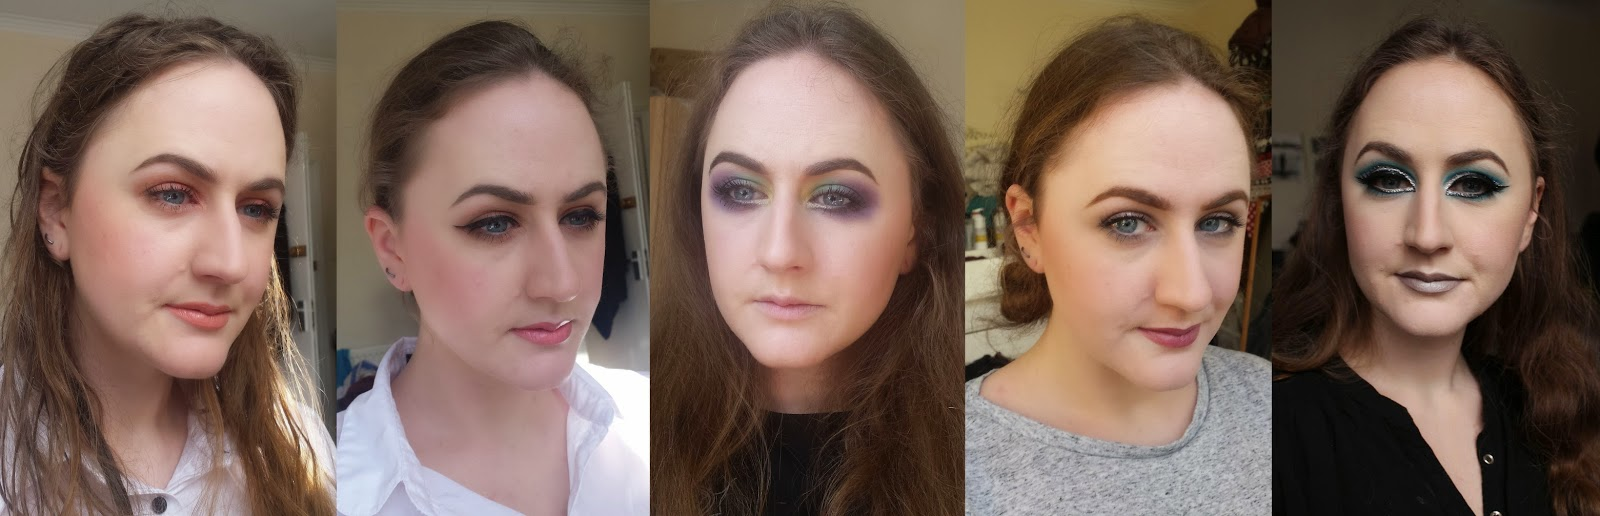 What difference does makeup make? After photos